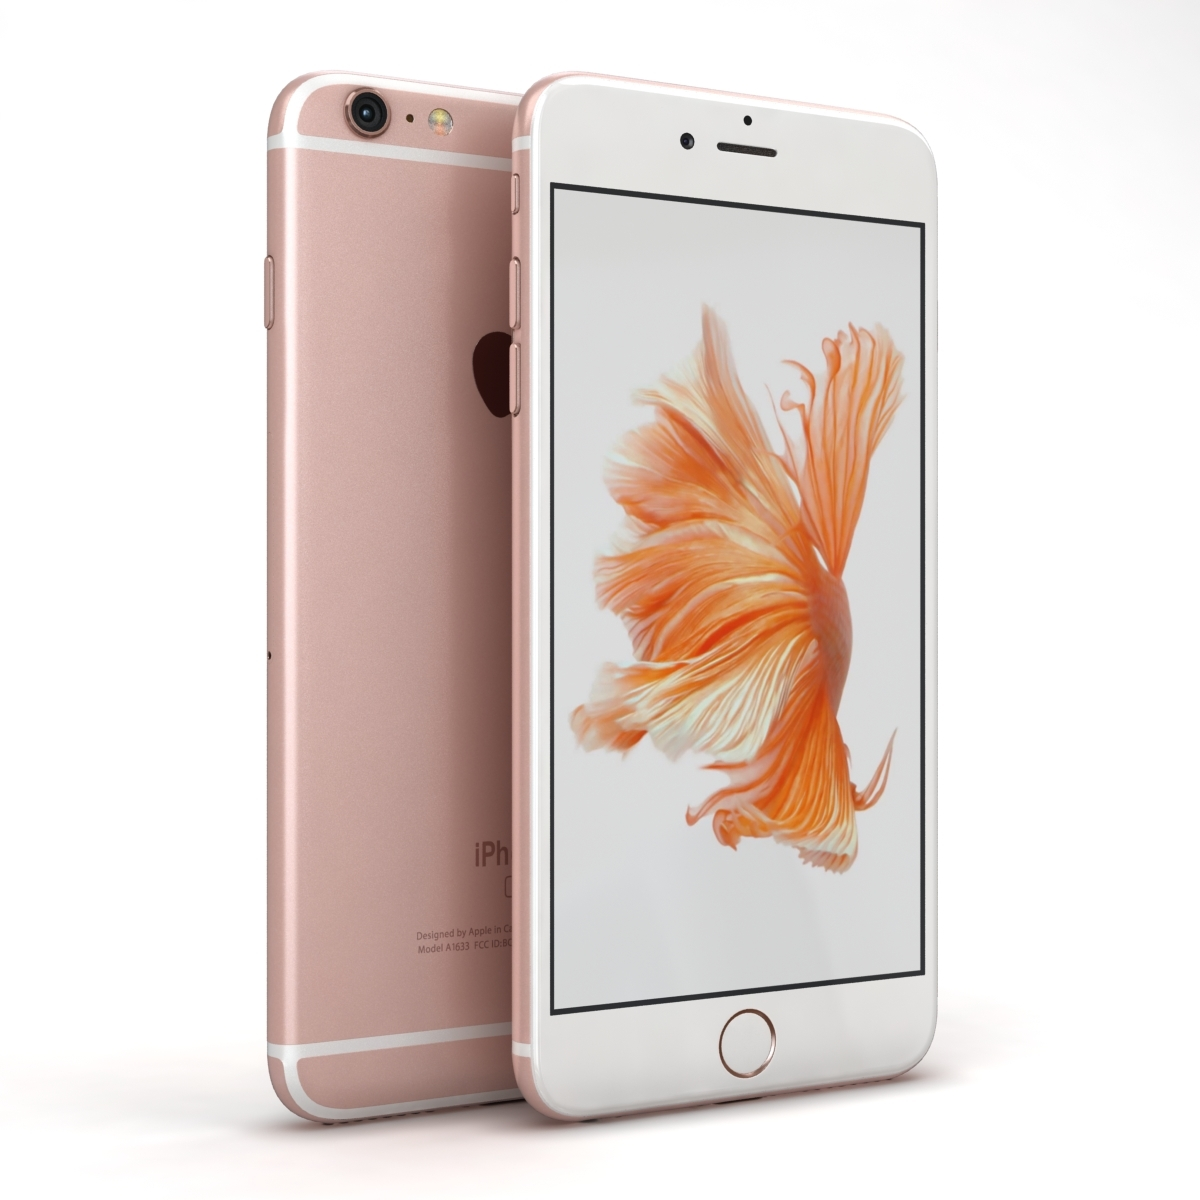 Apple I Phone 6s Plus 16gb ₦65,000